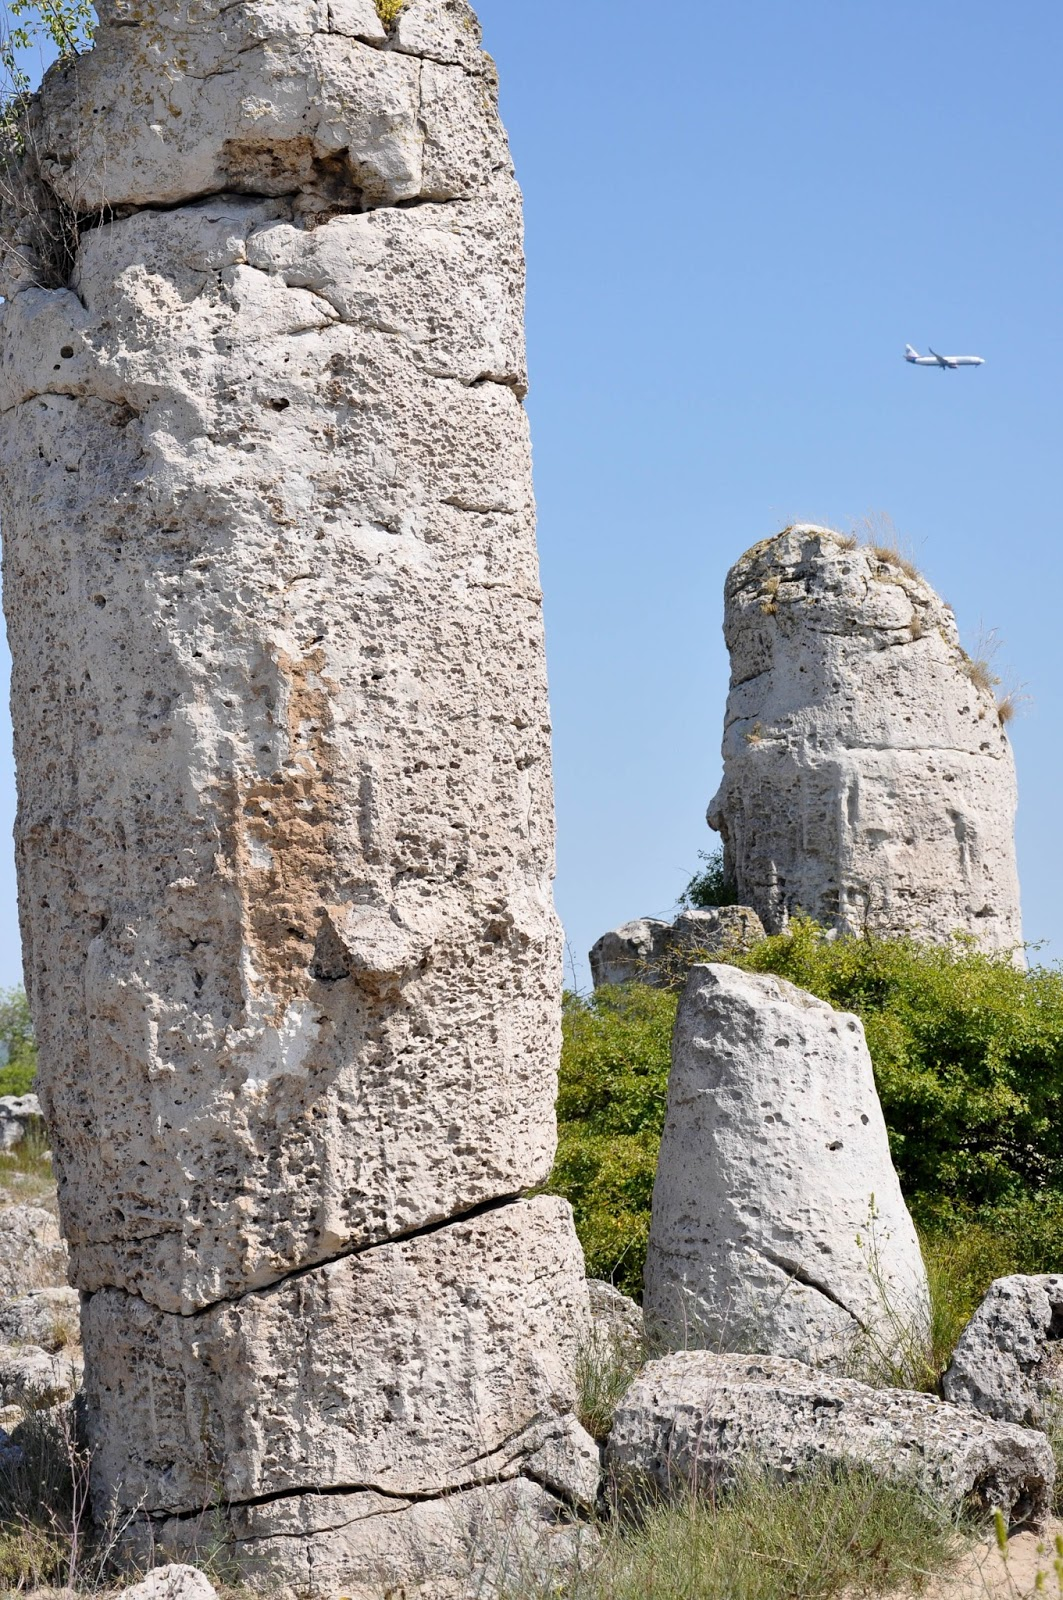 A passing plane, The Stone Forest, Varna, Bulgaria